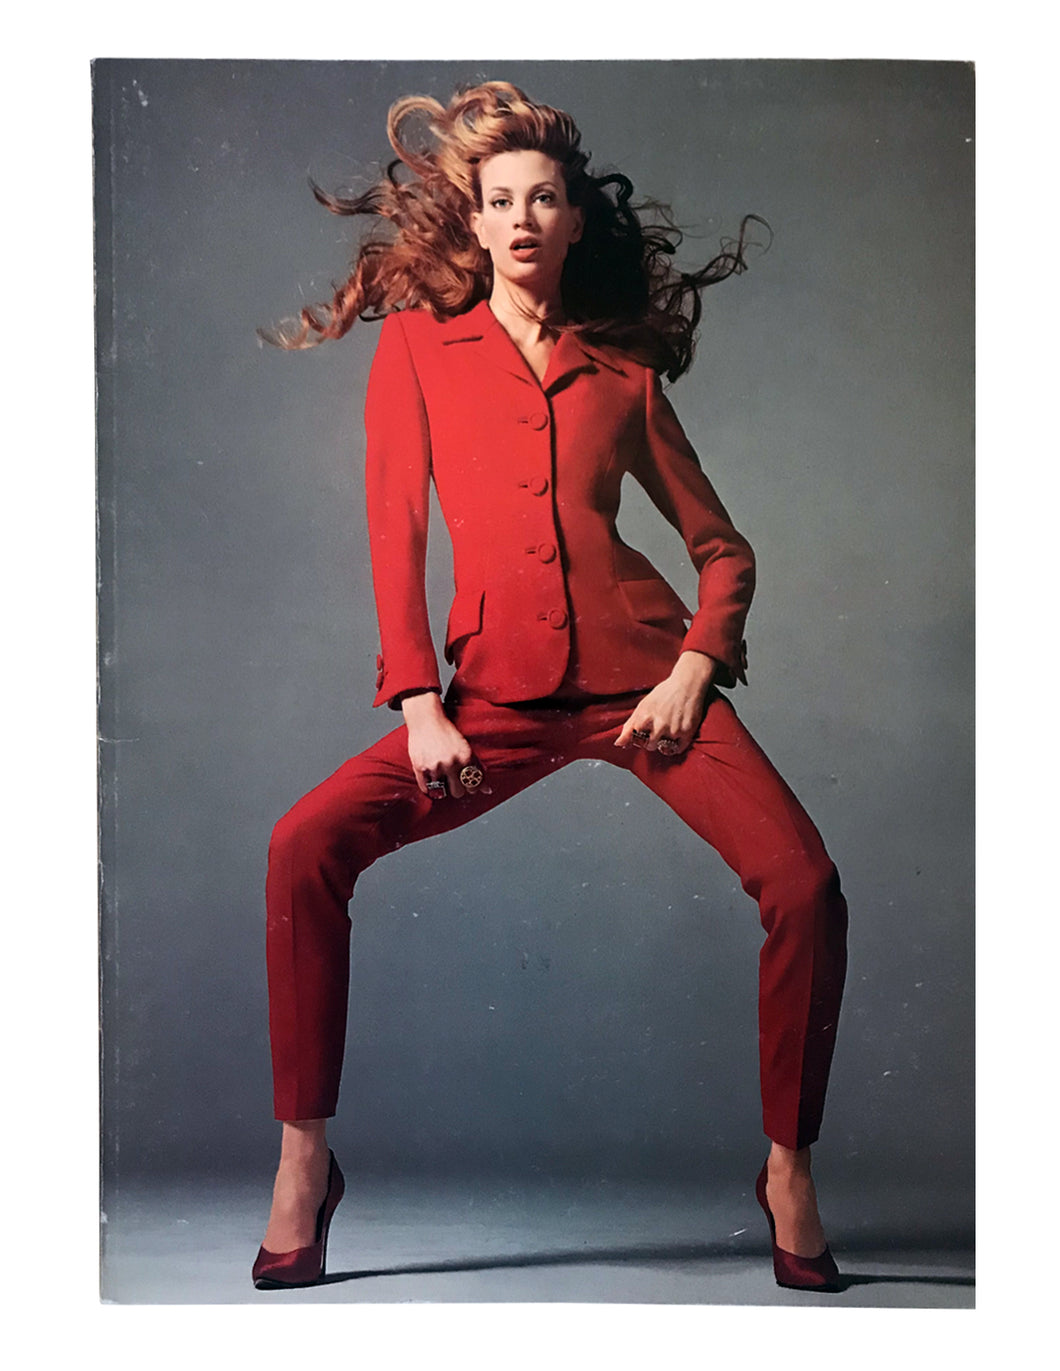 Versace, Richard Avedon